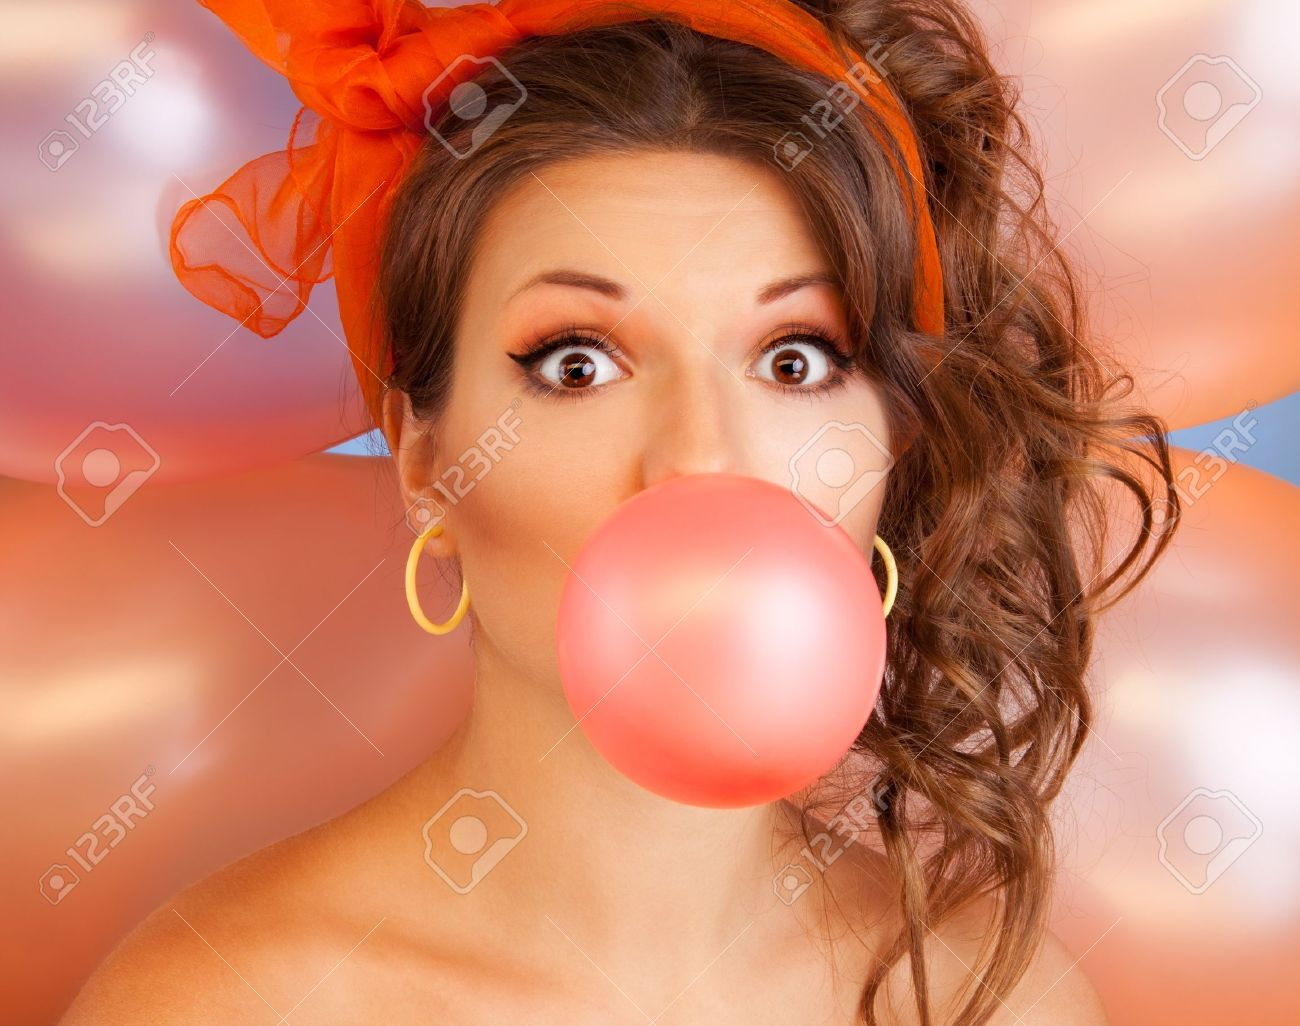 Happy woman at party blowing bubblegum bubble with air baloons on background Stock Photo - 9486768